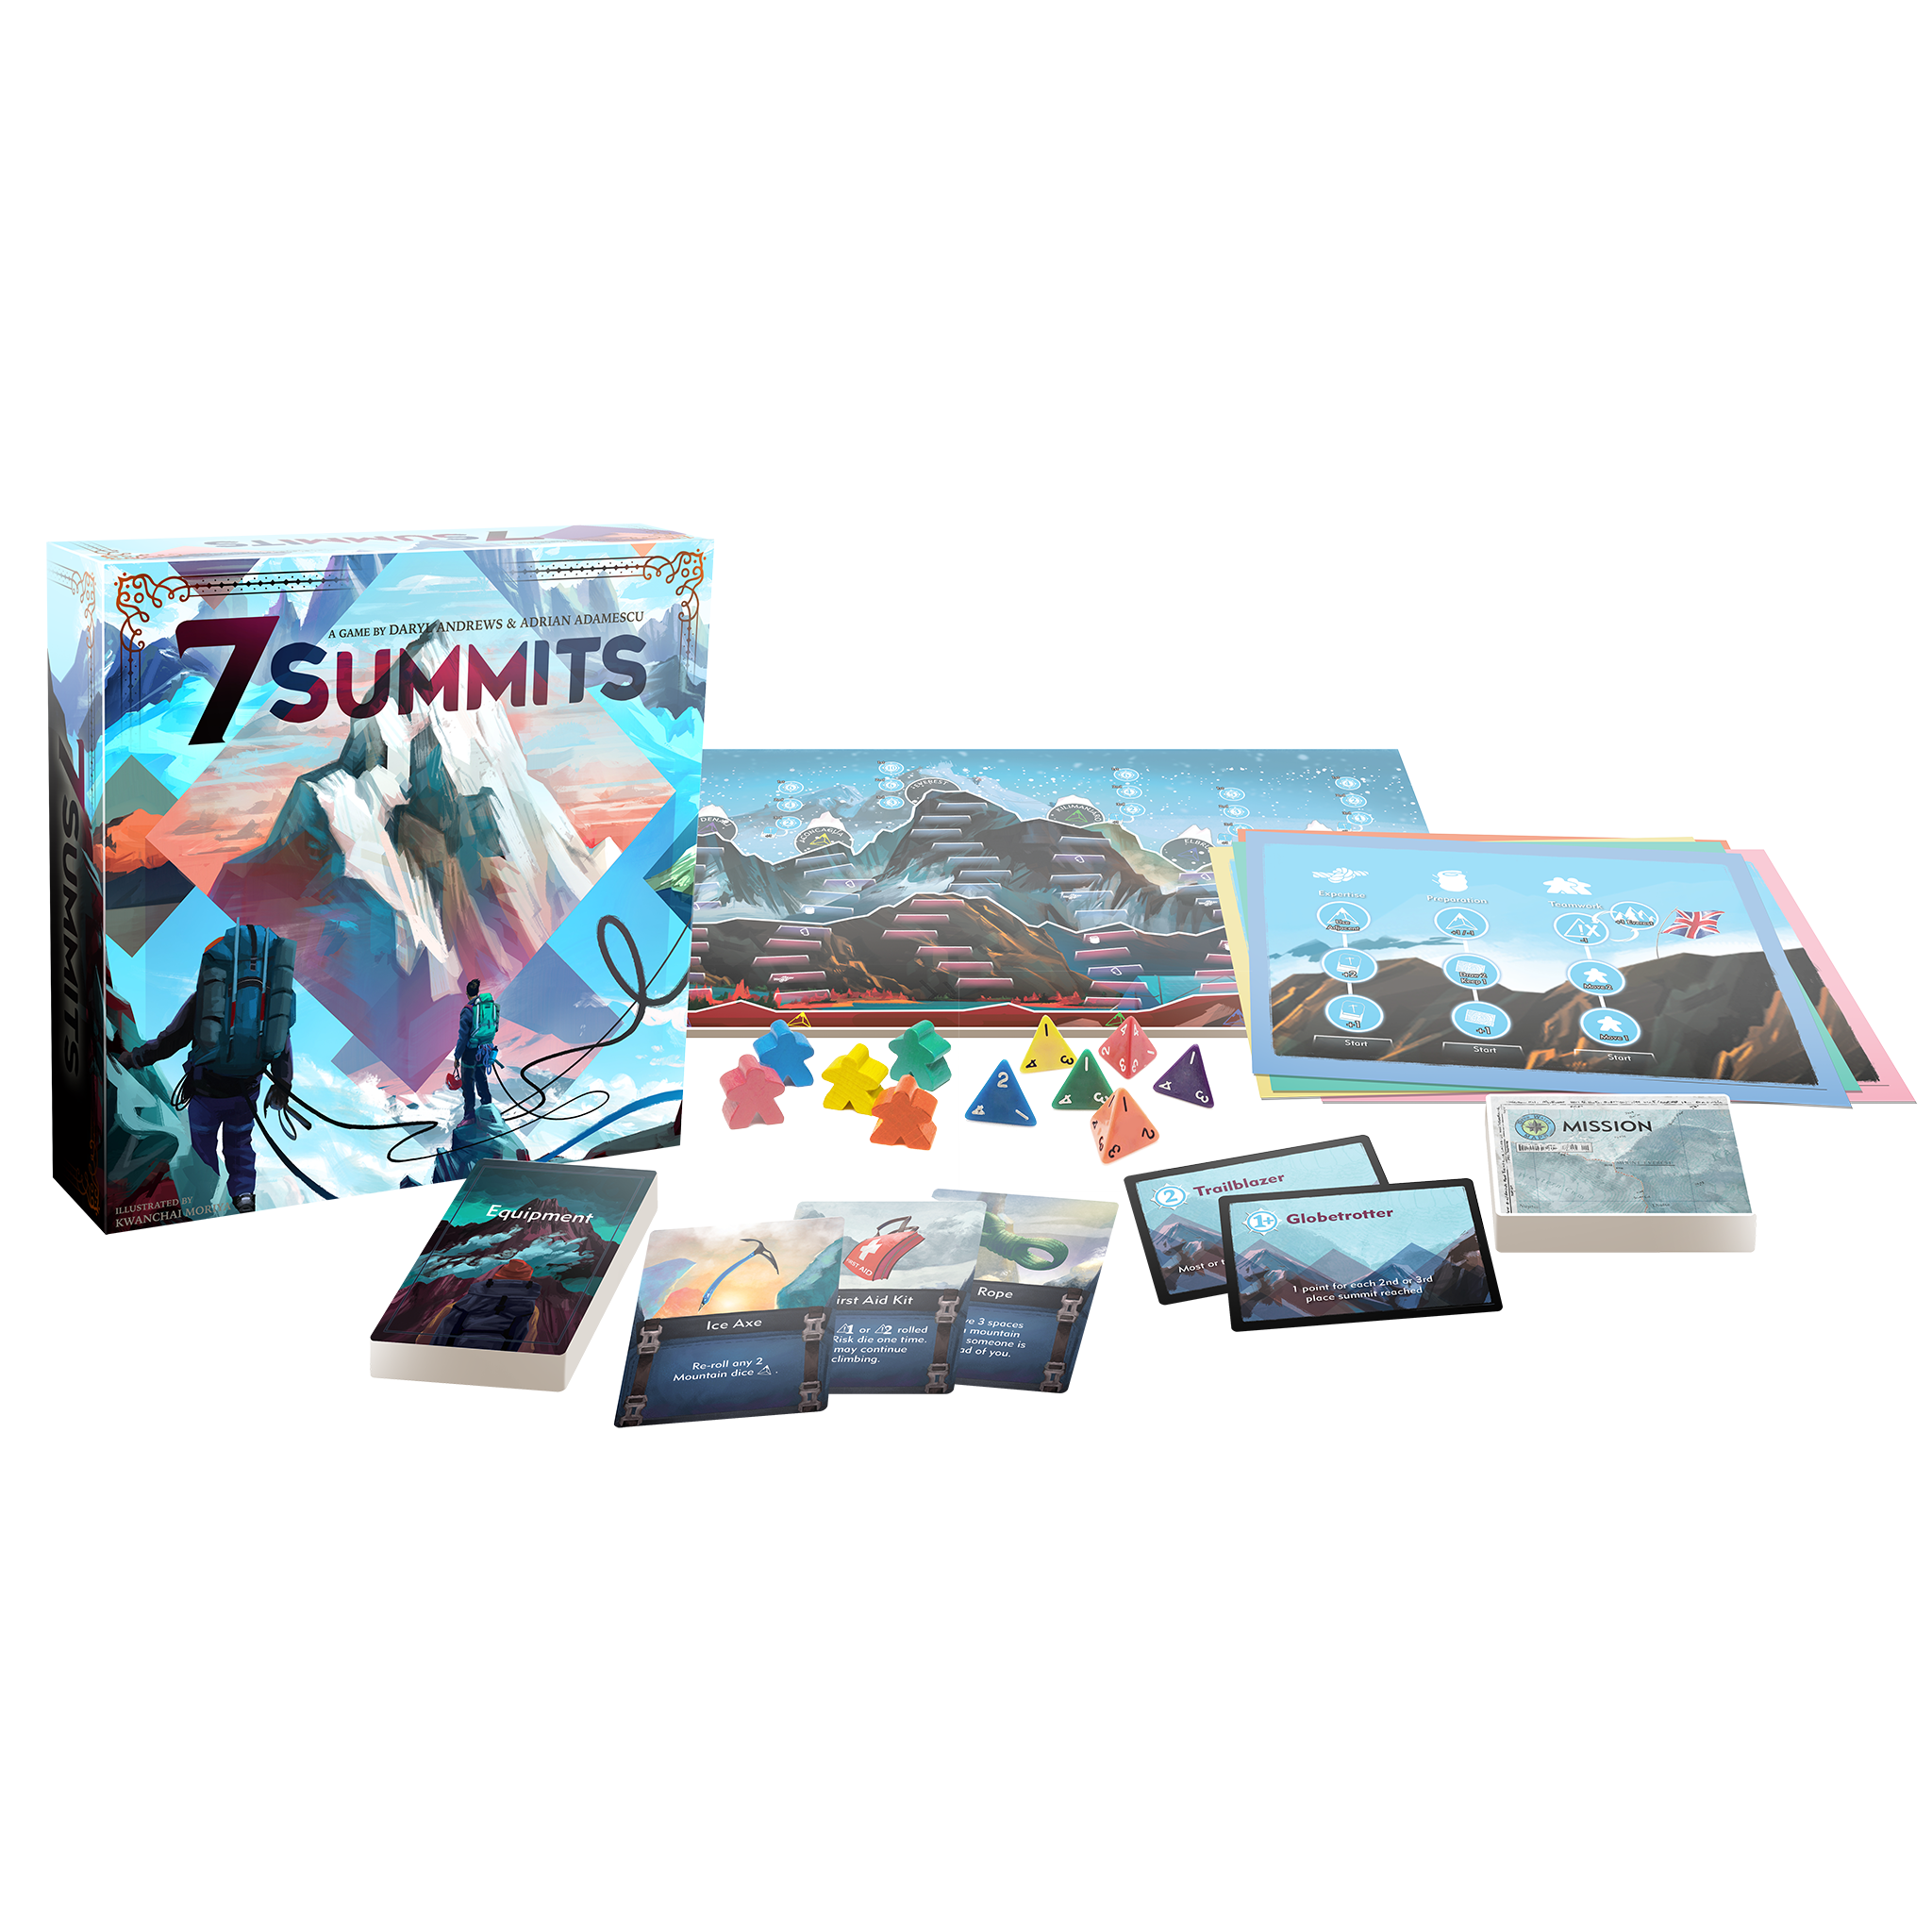 7 Summits Pre-Order + launch promos!